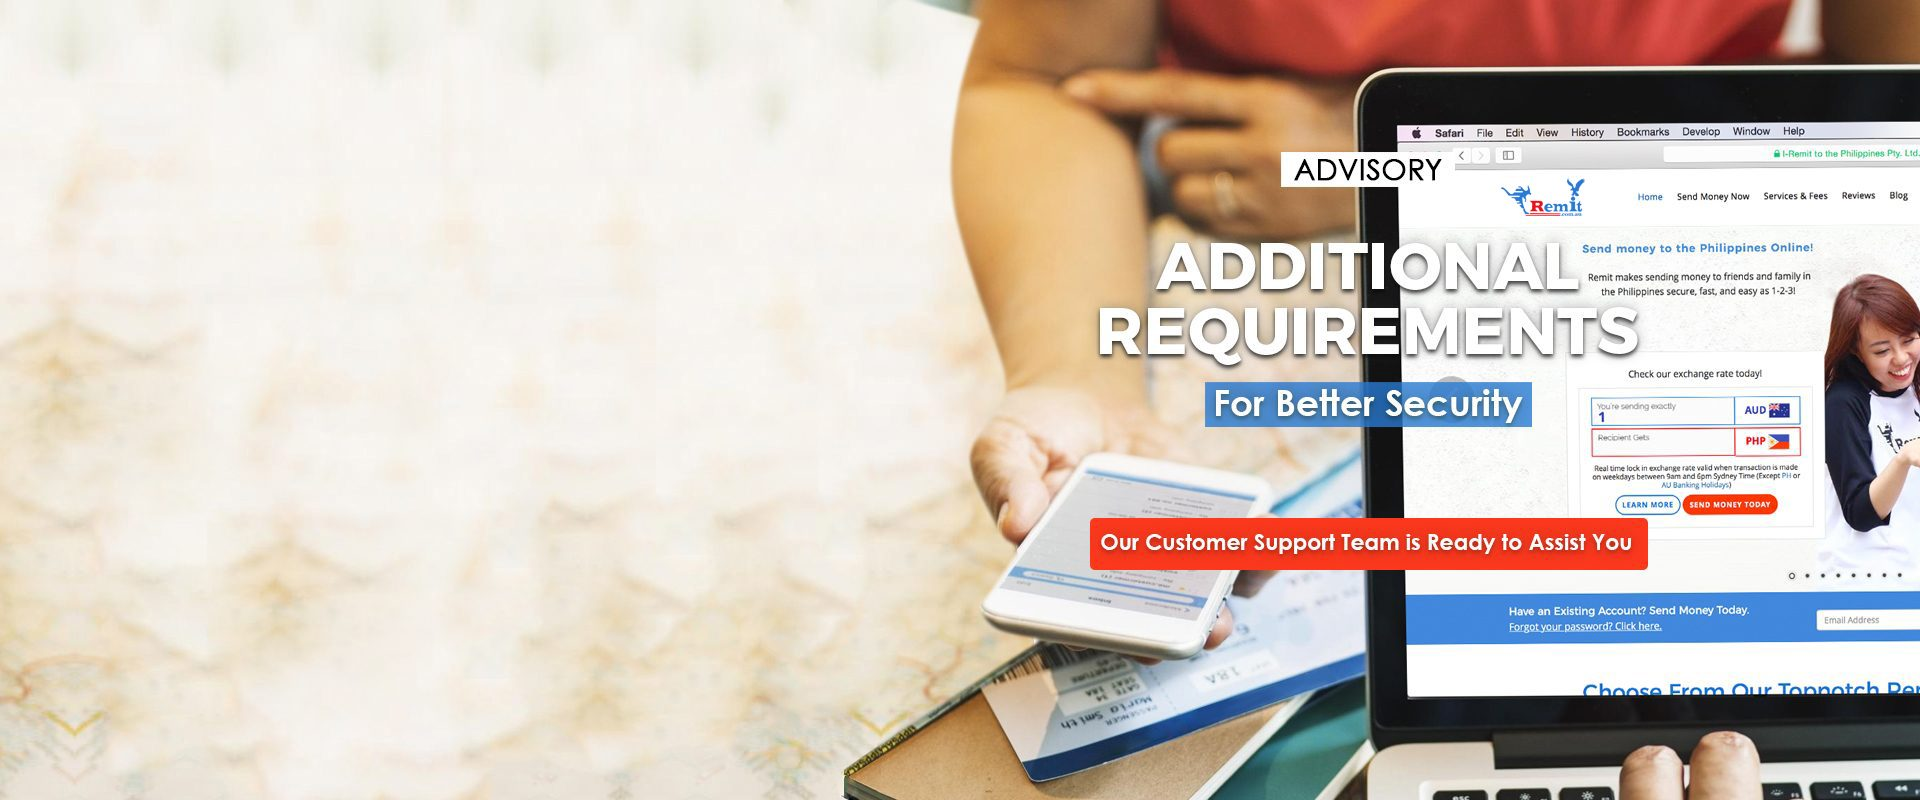 Send Money To Philippines Transfer Remittance Services Wiring From Us Remit The